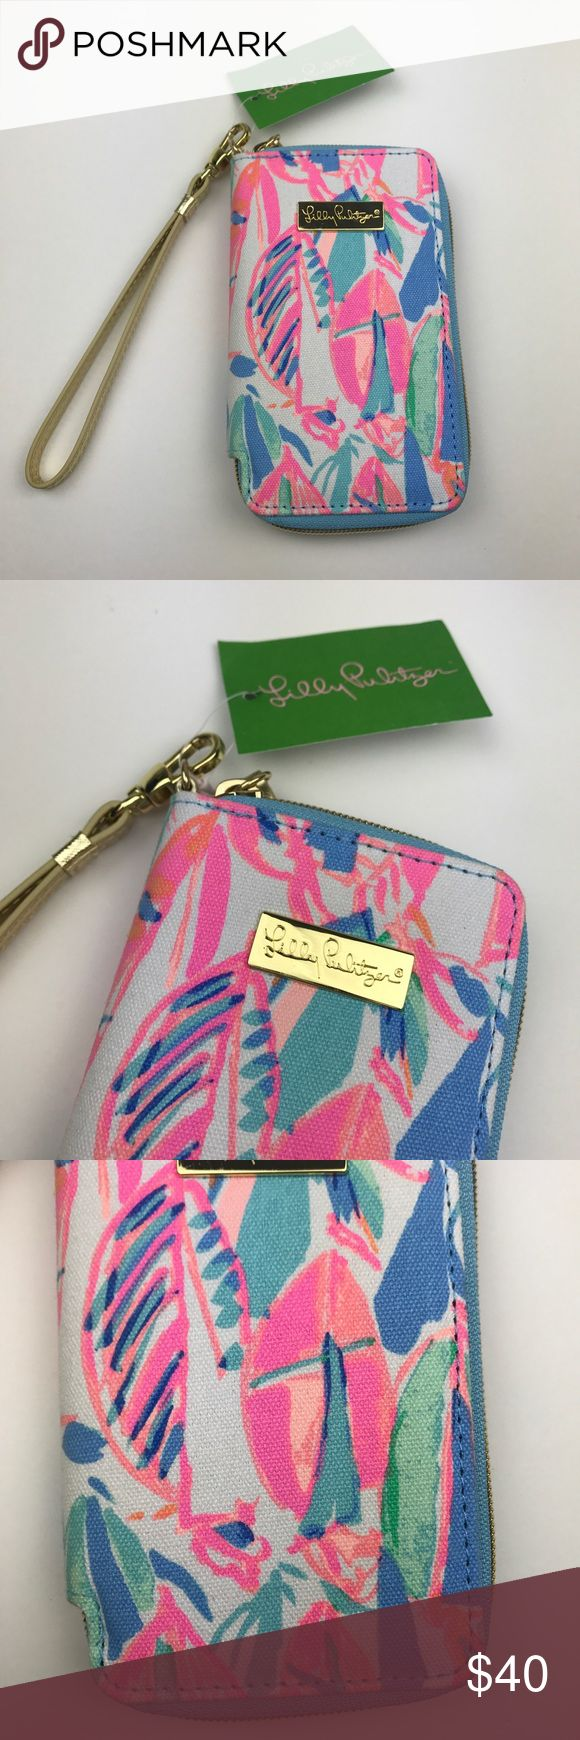 "[Lilly Pulitzer] Tiki Palm Phone Case Wristlet New Colorful printed zip case with Wristlet strap. Interior smart phone pocket fits iPhone 6, 6s , and 7. Credit card and ID slots. Perfect for on the go. Out To Sea print.   🔹Dimensions: 3.5""W x 6""H x 0.75""D 🔹Condition: NWT. New and never used. Lilly Pulitzer Bags Clutches & Wristlets"